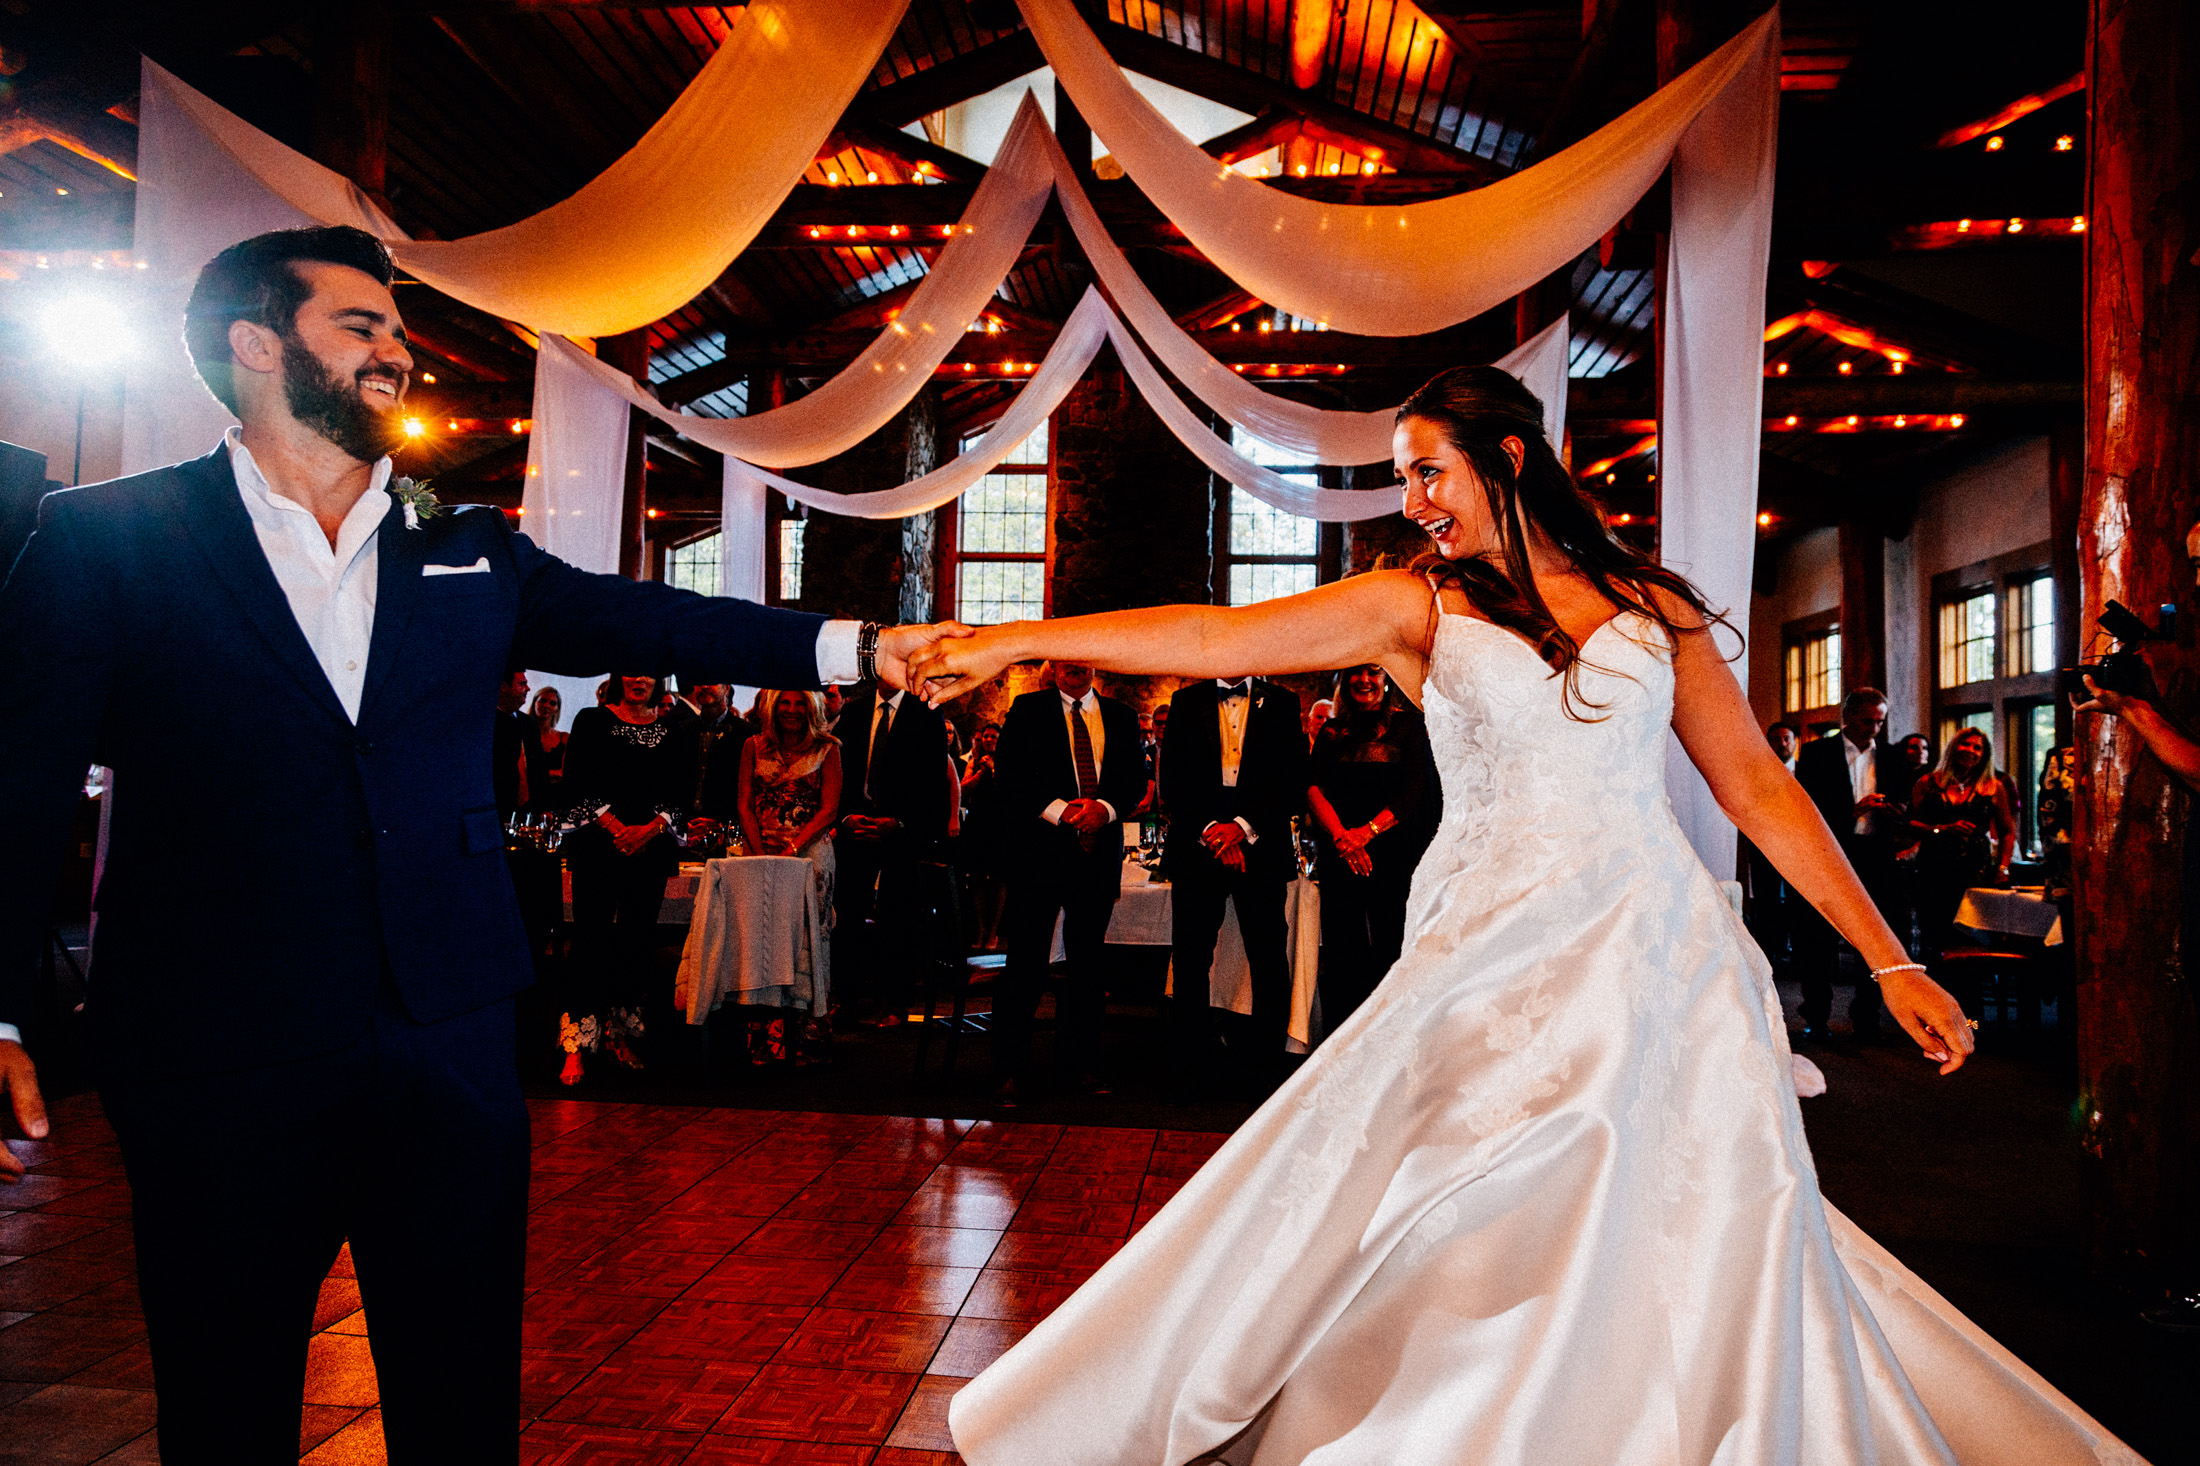 Bride and groom first dance in the Timber Ridge Lodge.